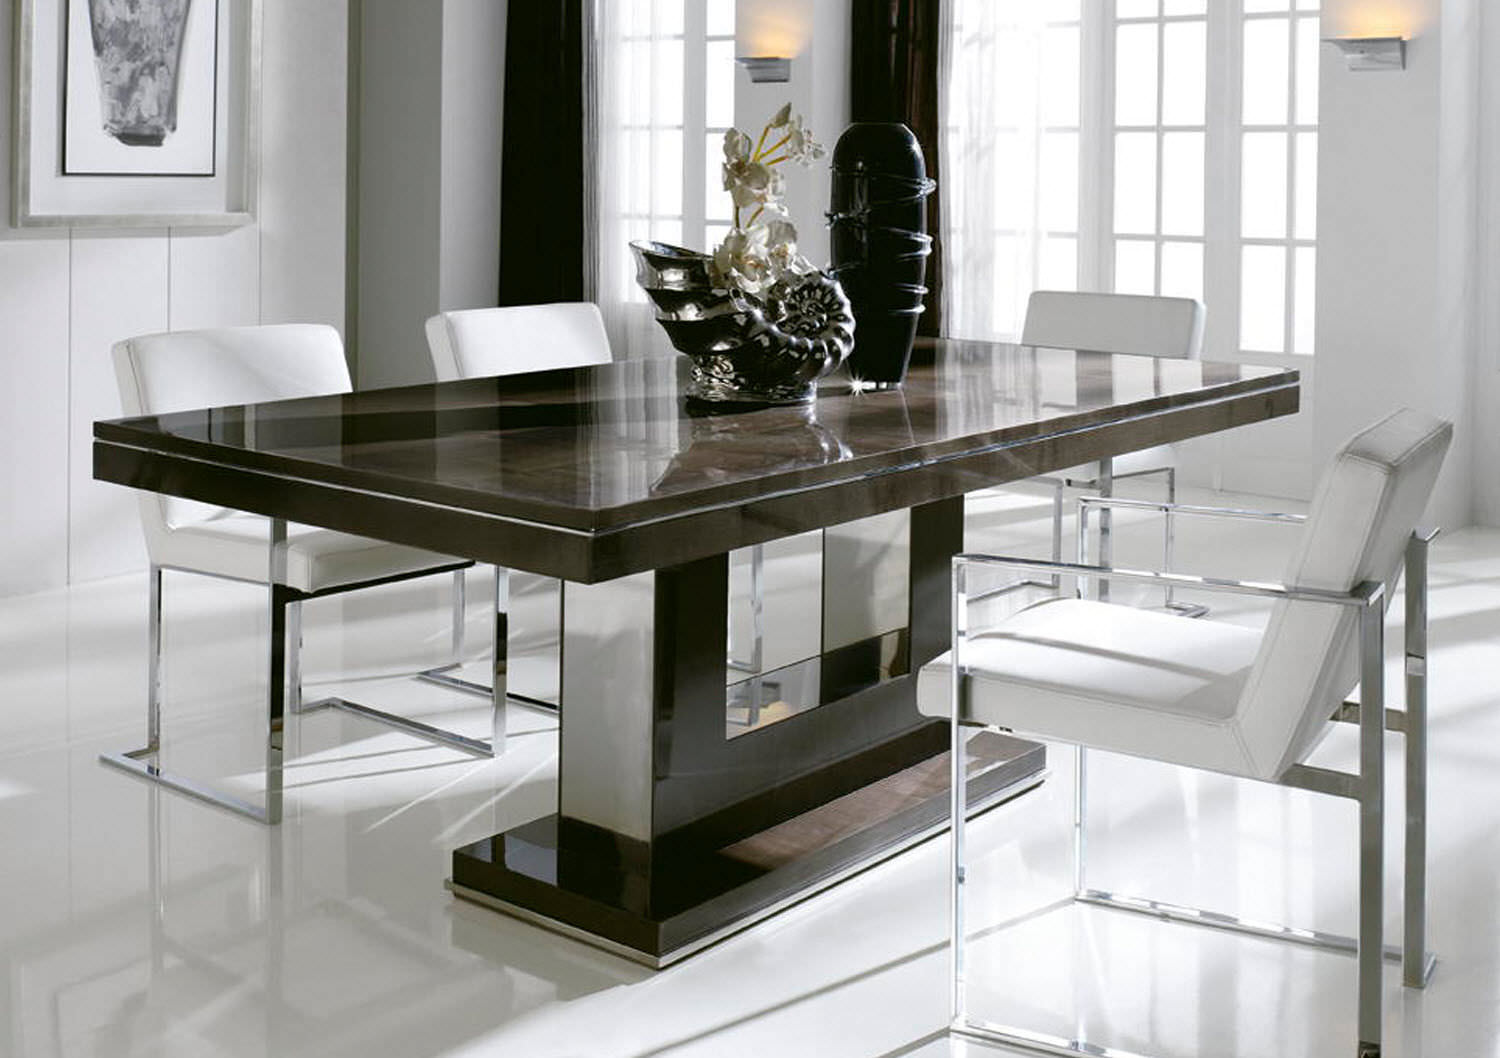 Modern Dining Tables Orange Shine Shining Contemporary Simple Great Chocolate Brown Wooden Table Black